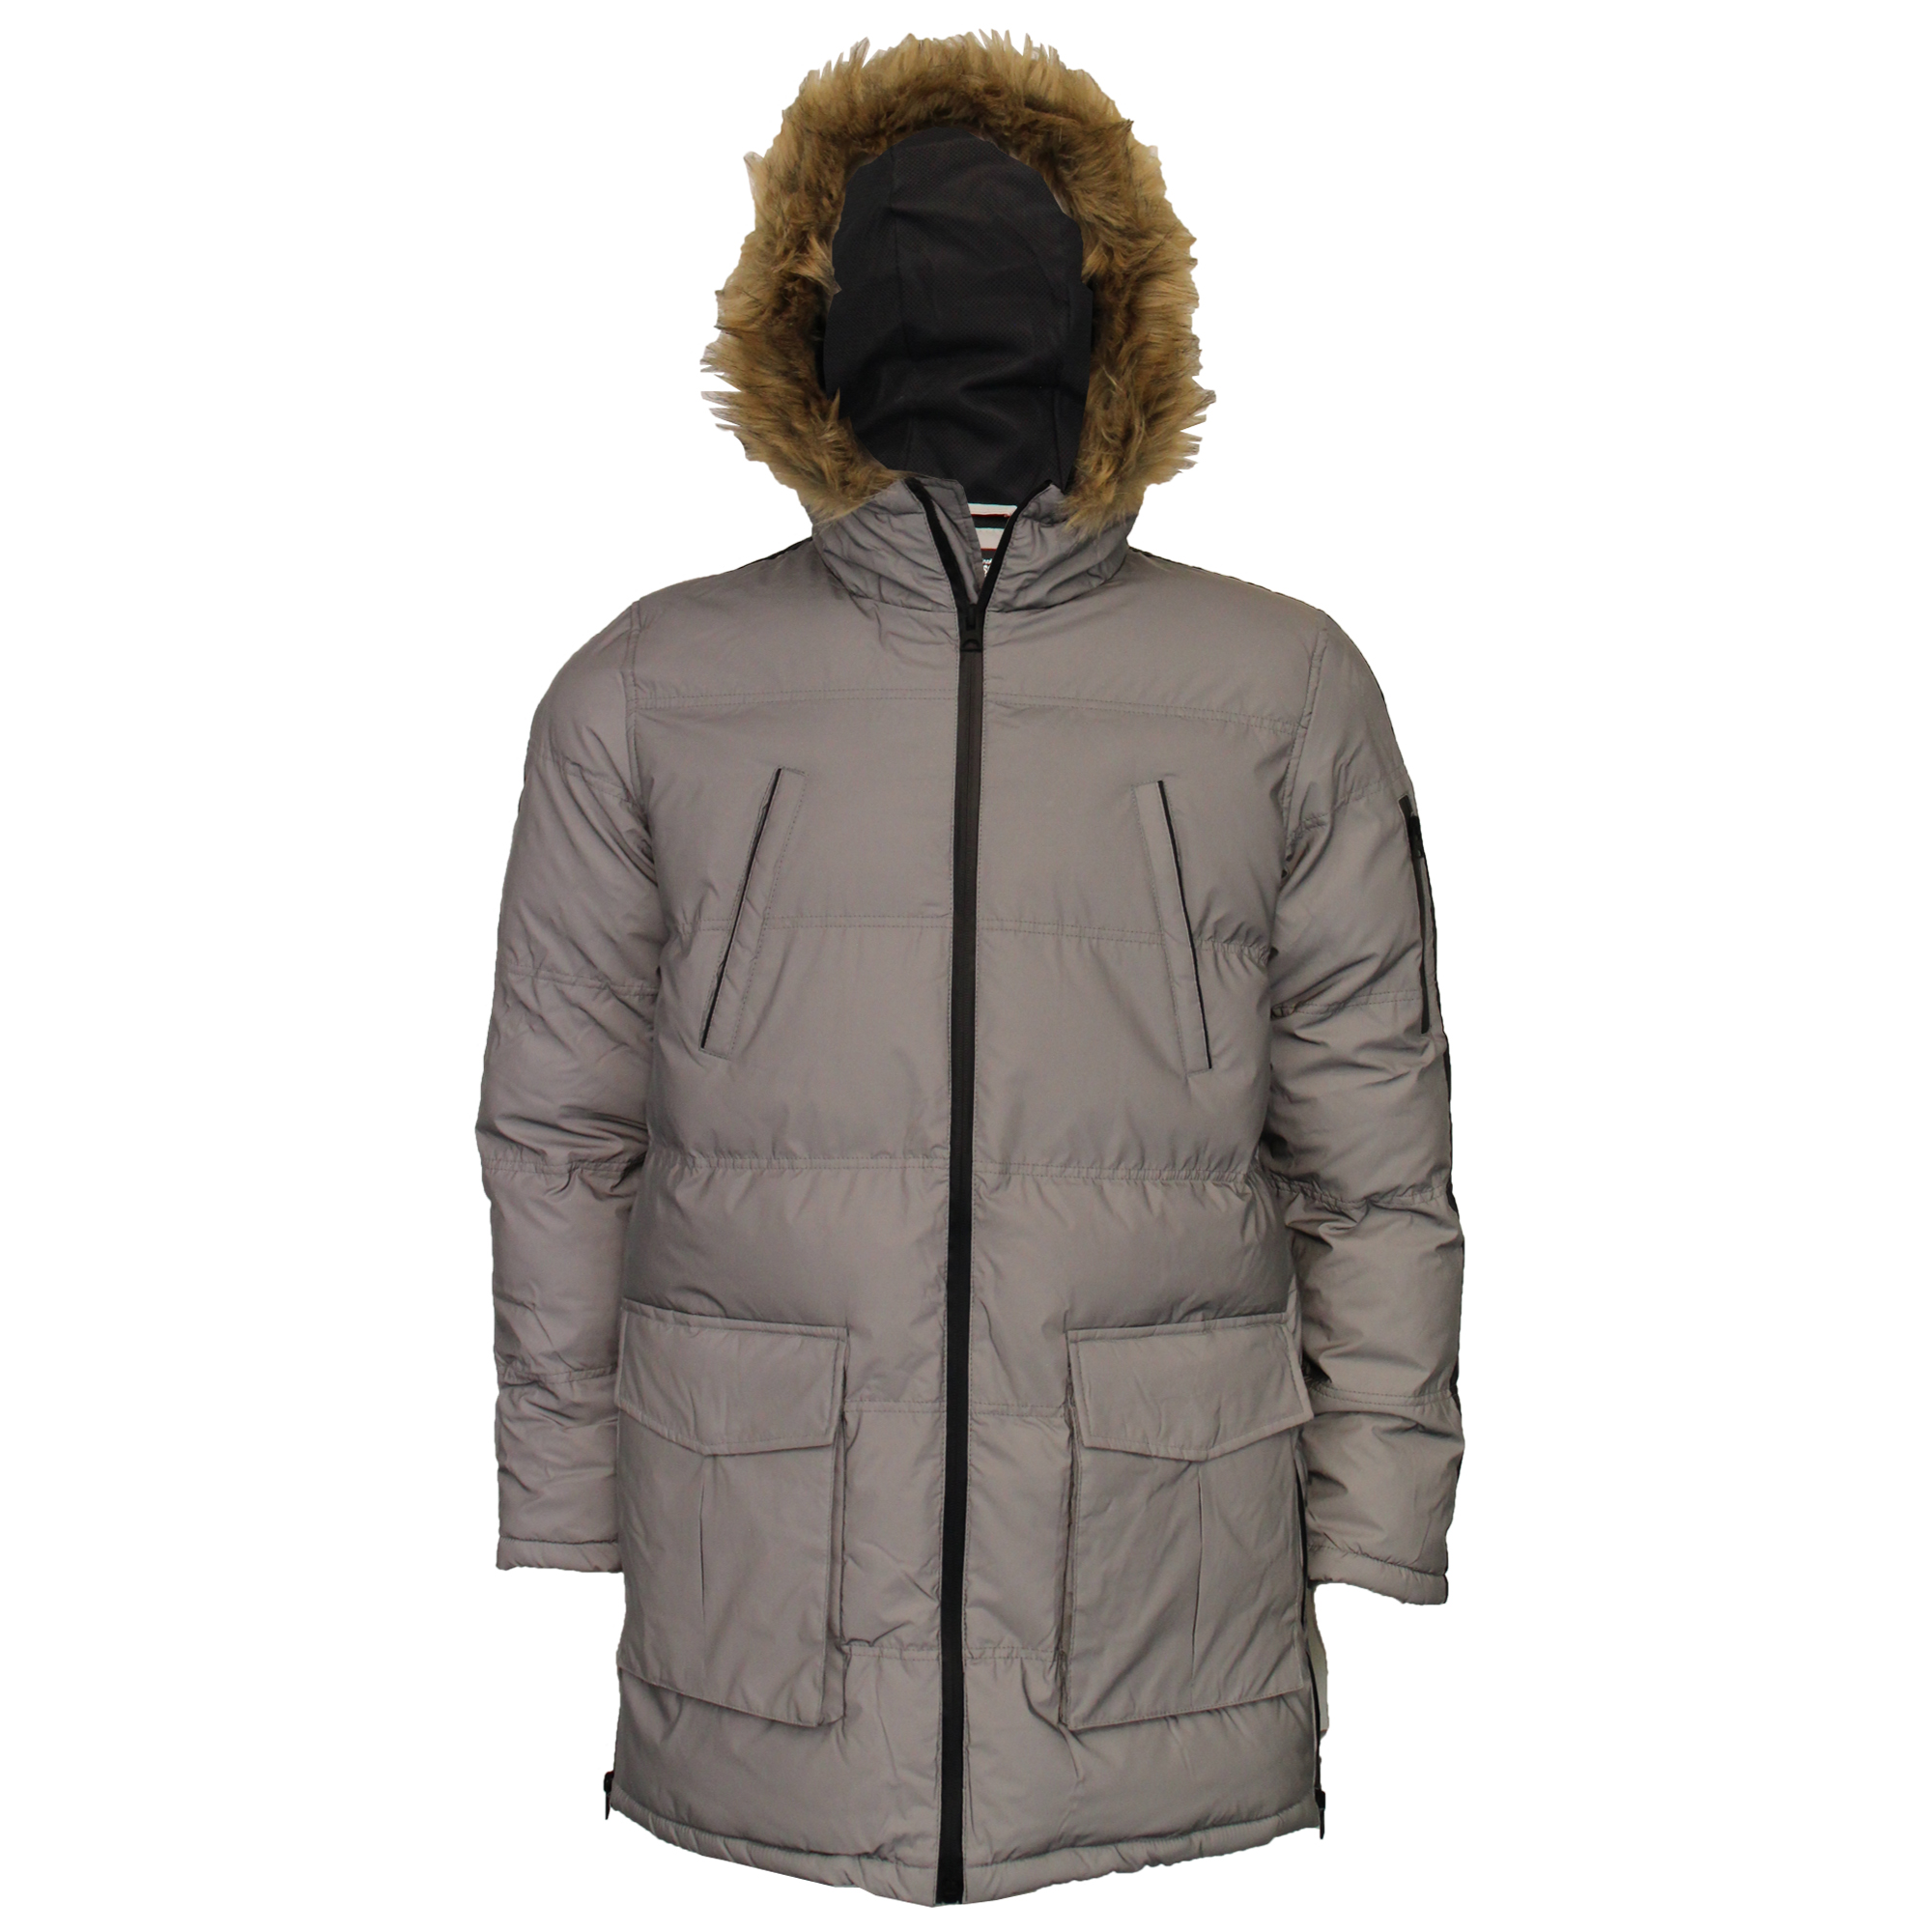 Mens-Reflective-Long-Bubble-Parka-Jacket-Brave-Soul-Coat-Hooded-Padded-Winter thumbnail 8